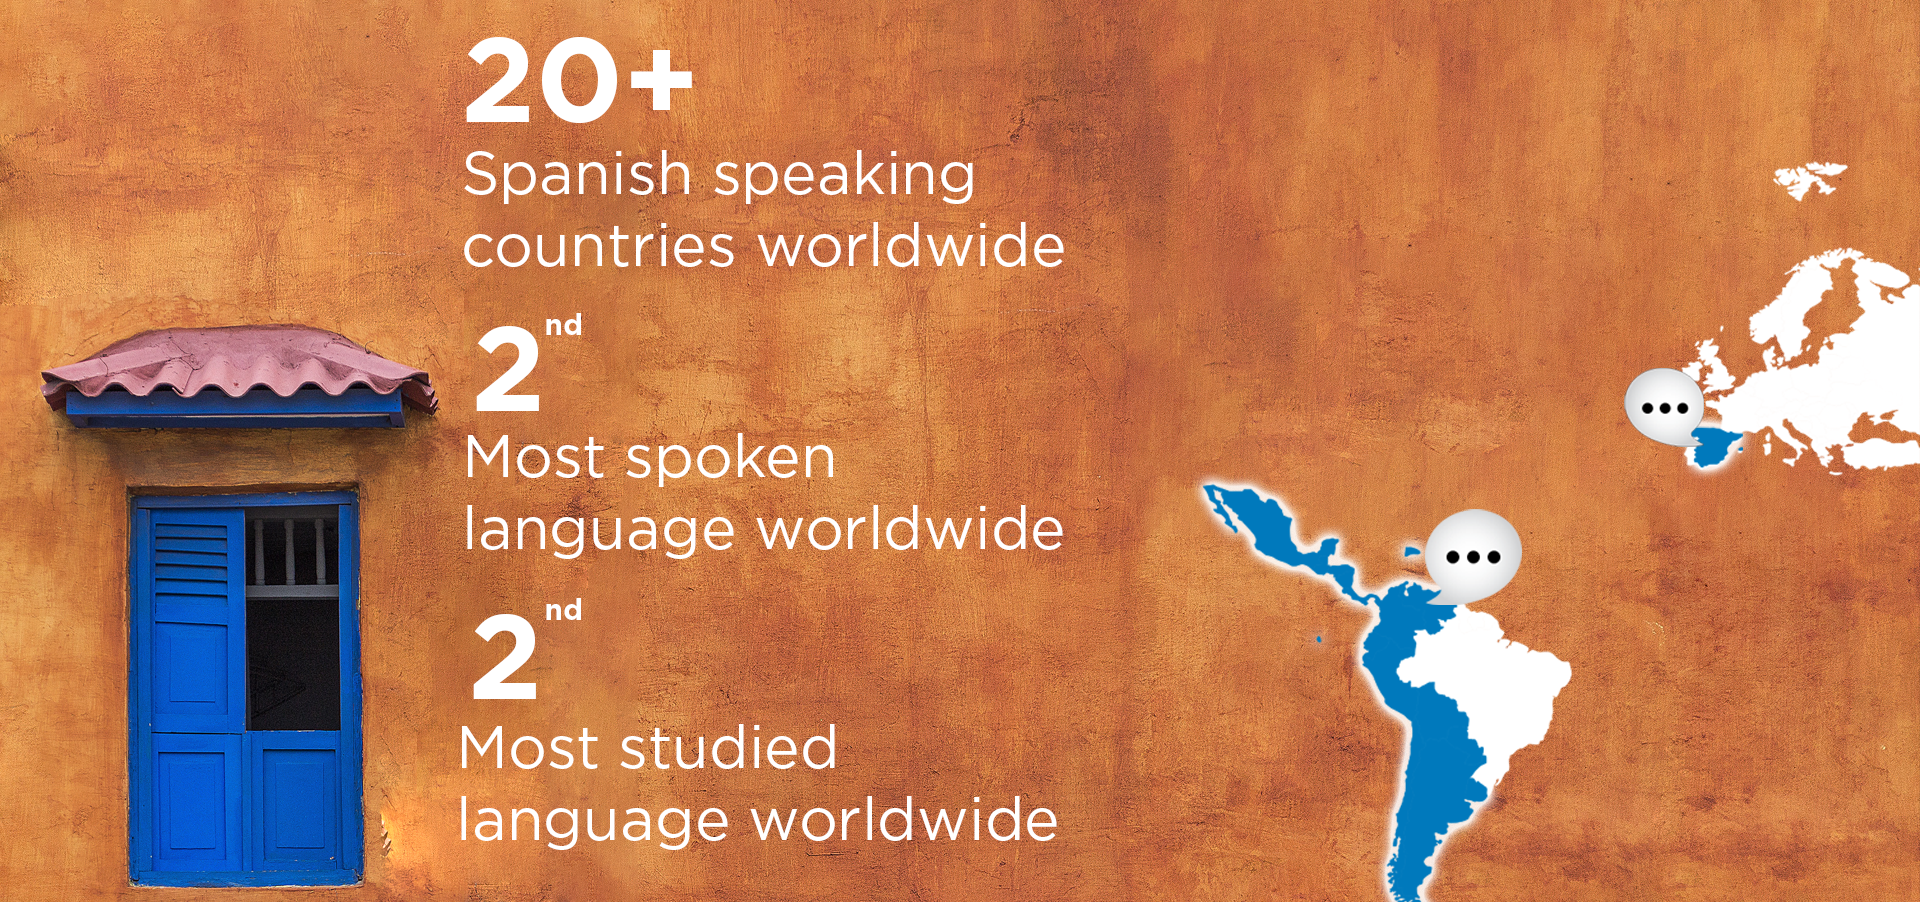 Stats about the Spanish language which highlight the need for Spanish translation services